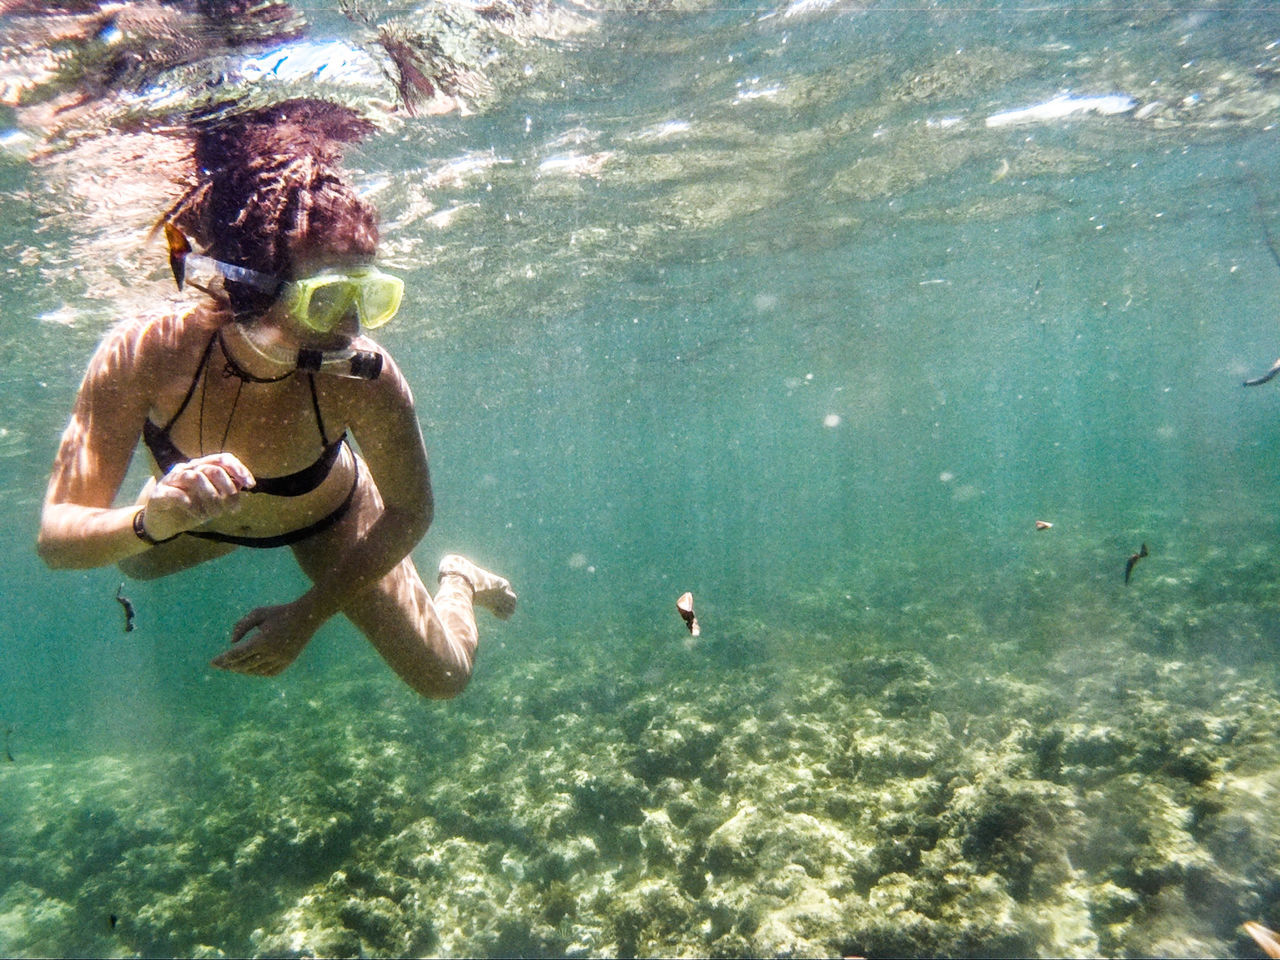 underwater, swimming, water, undersea, sea, leisure activity, real people, animal themes, scuba diving, one person, shirtless, snorkeling, full length, day, sea life, nature, adventure, vacations, lifestyles, young adult, outdoors, people